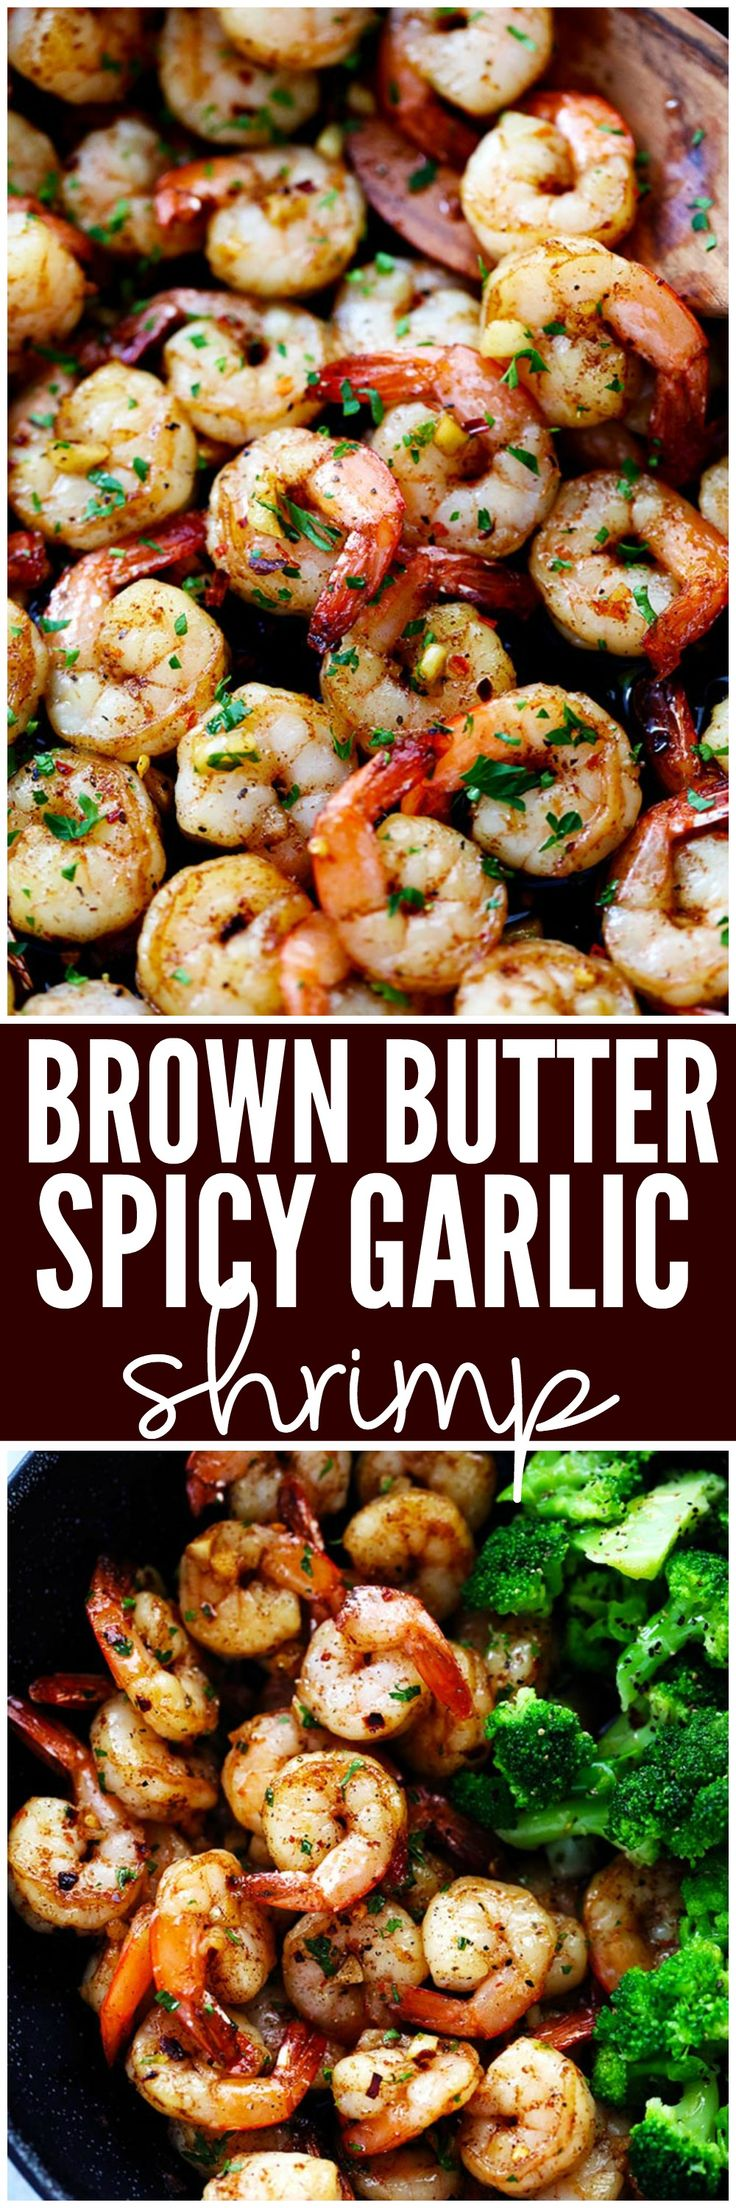 Brown Butter Spicy Garlic Shrimp is an incredibly easy meal that is ready in just 15 minutes! The brown butter flavor is so luxurious over the spicy garlic shrimp. It will wow your family!